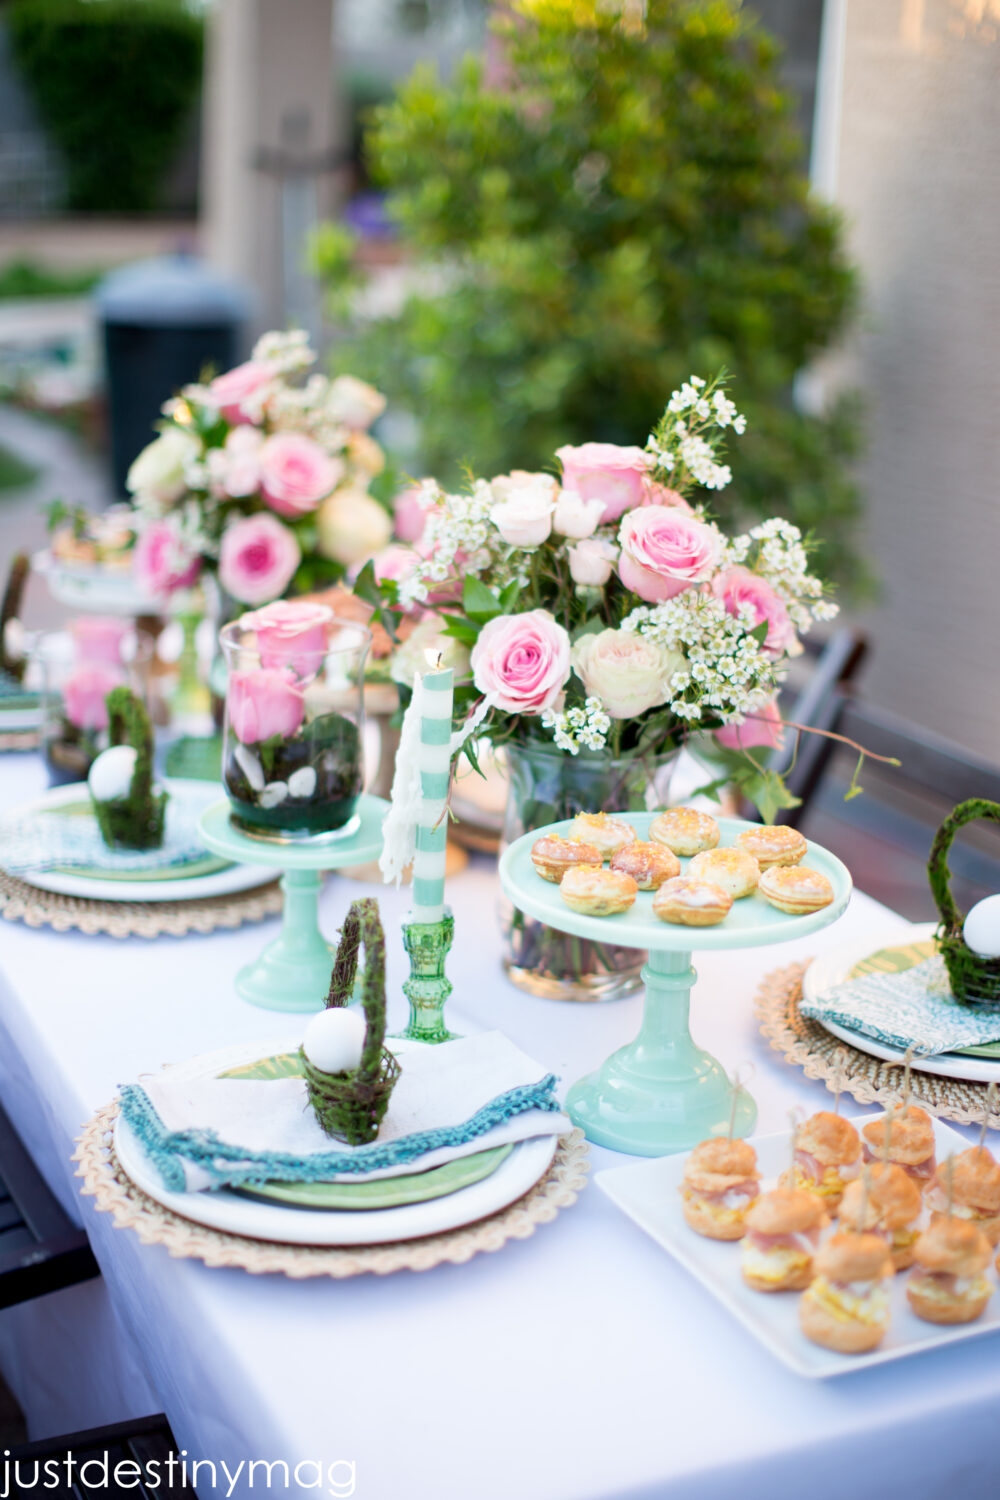 Setting an Easter Table with World Market